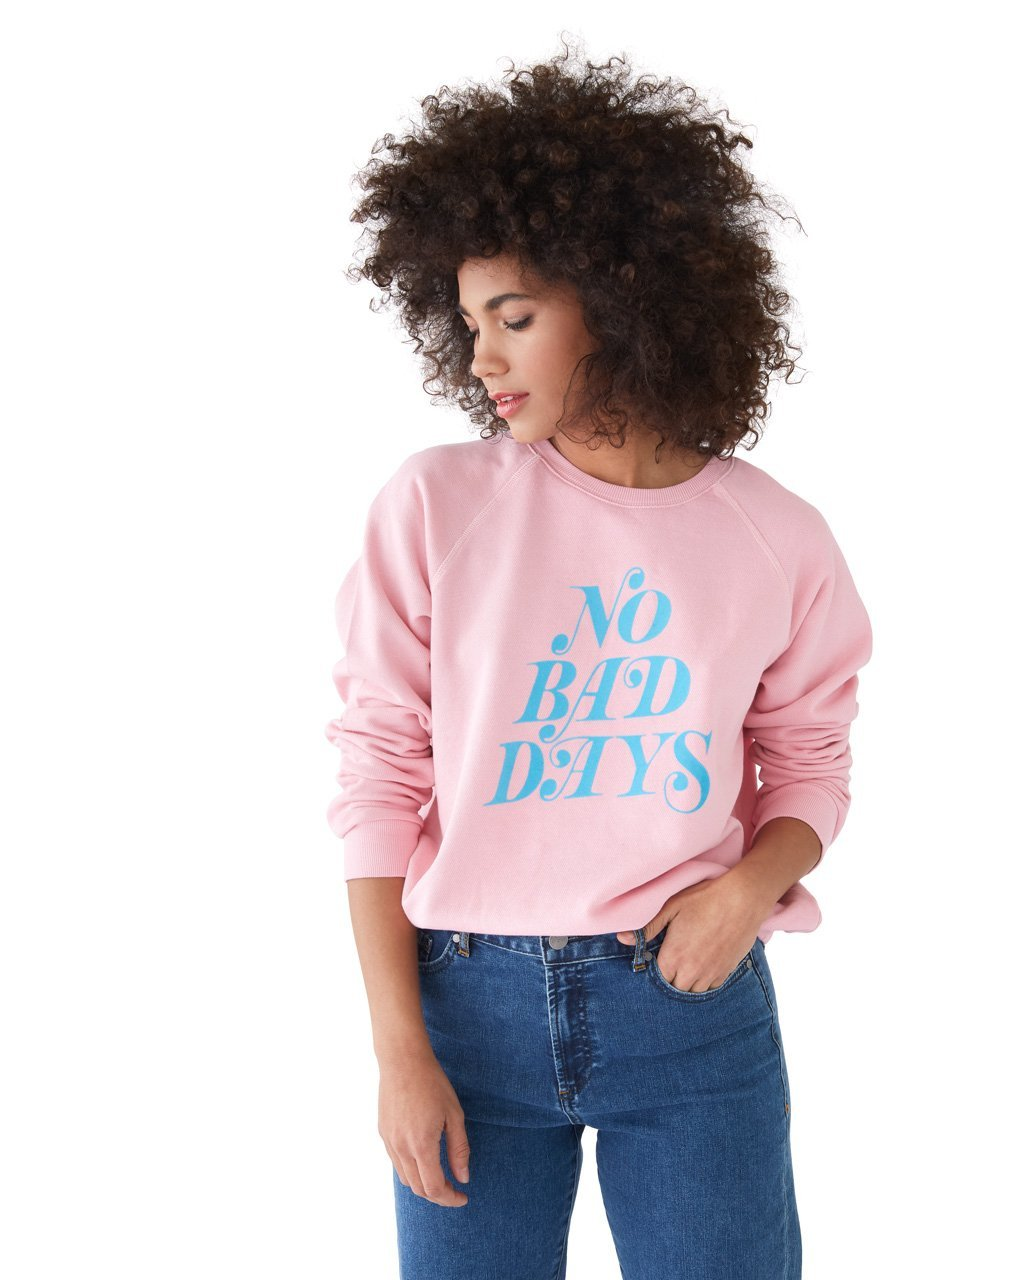 Sweatshirt - No Bad Days (Pink)